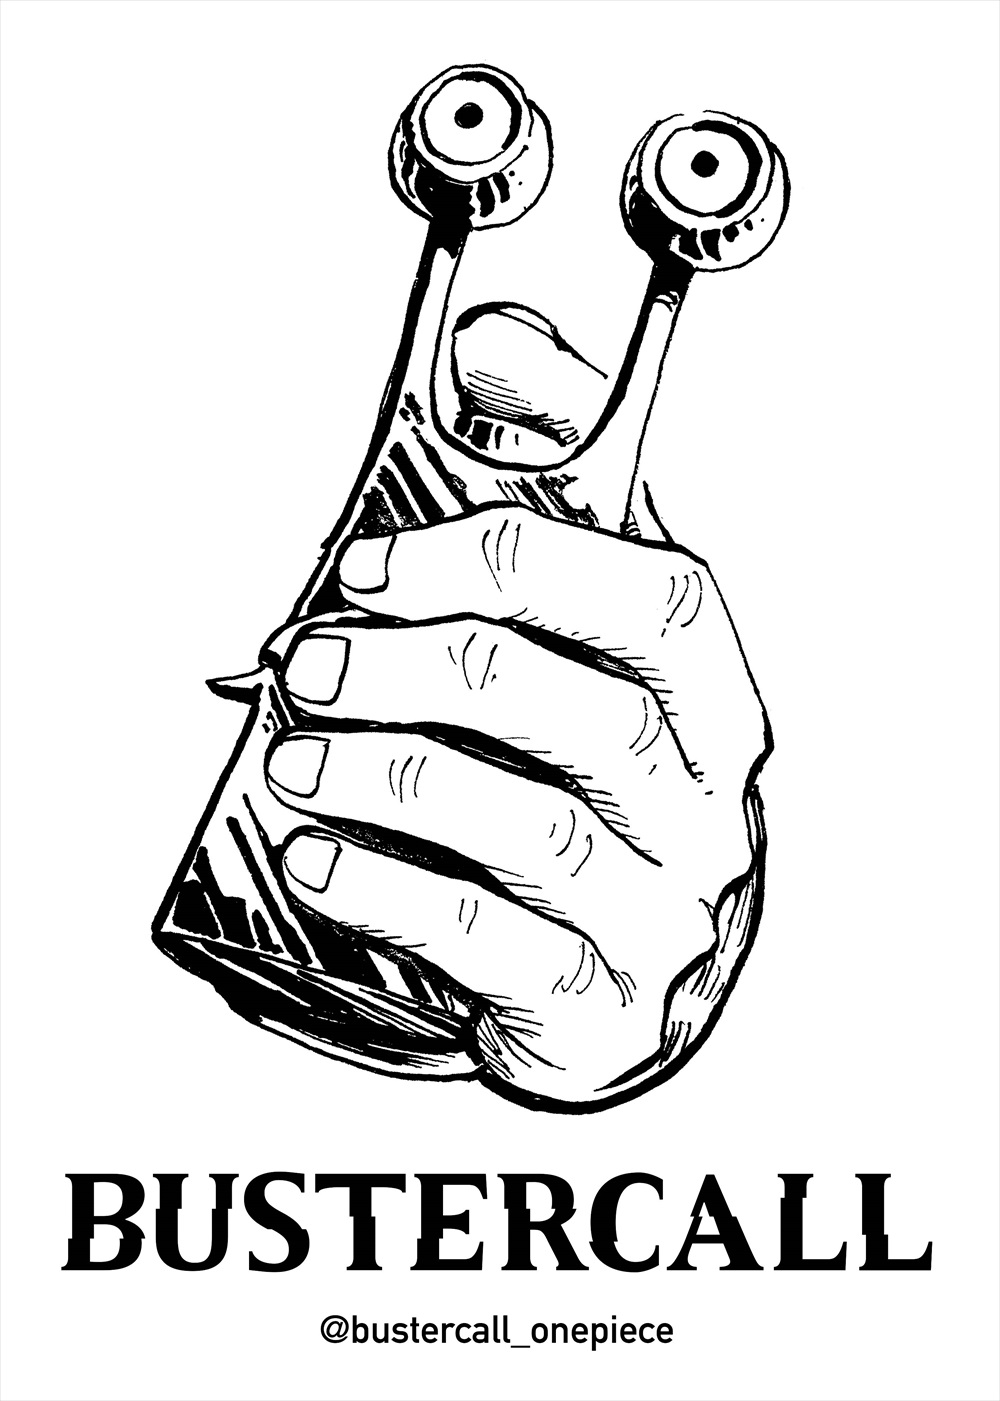 BUSTERCALL_R